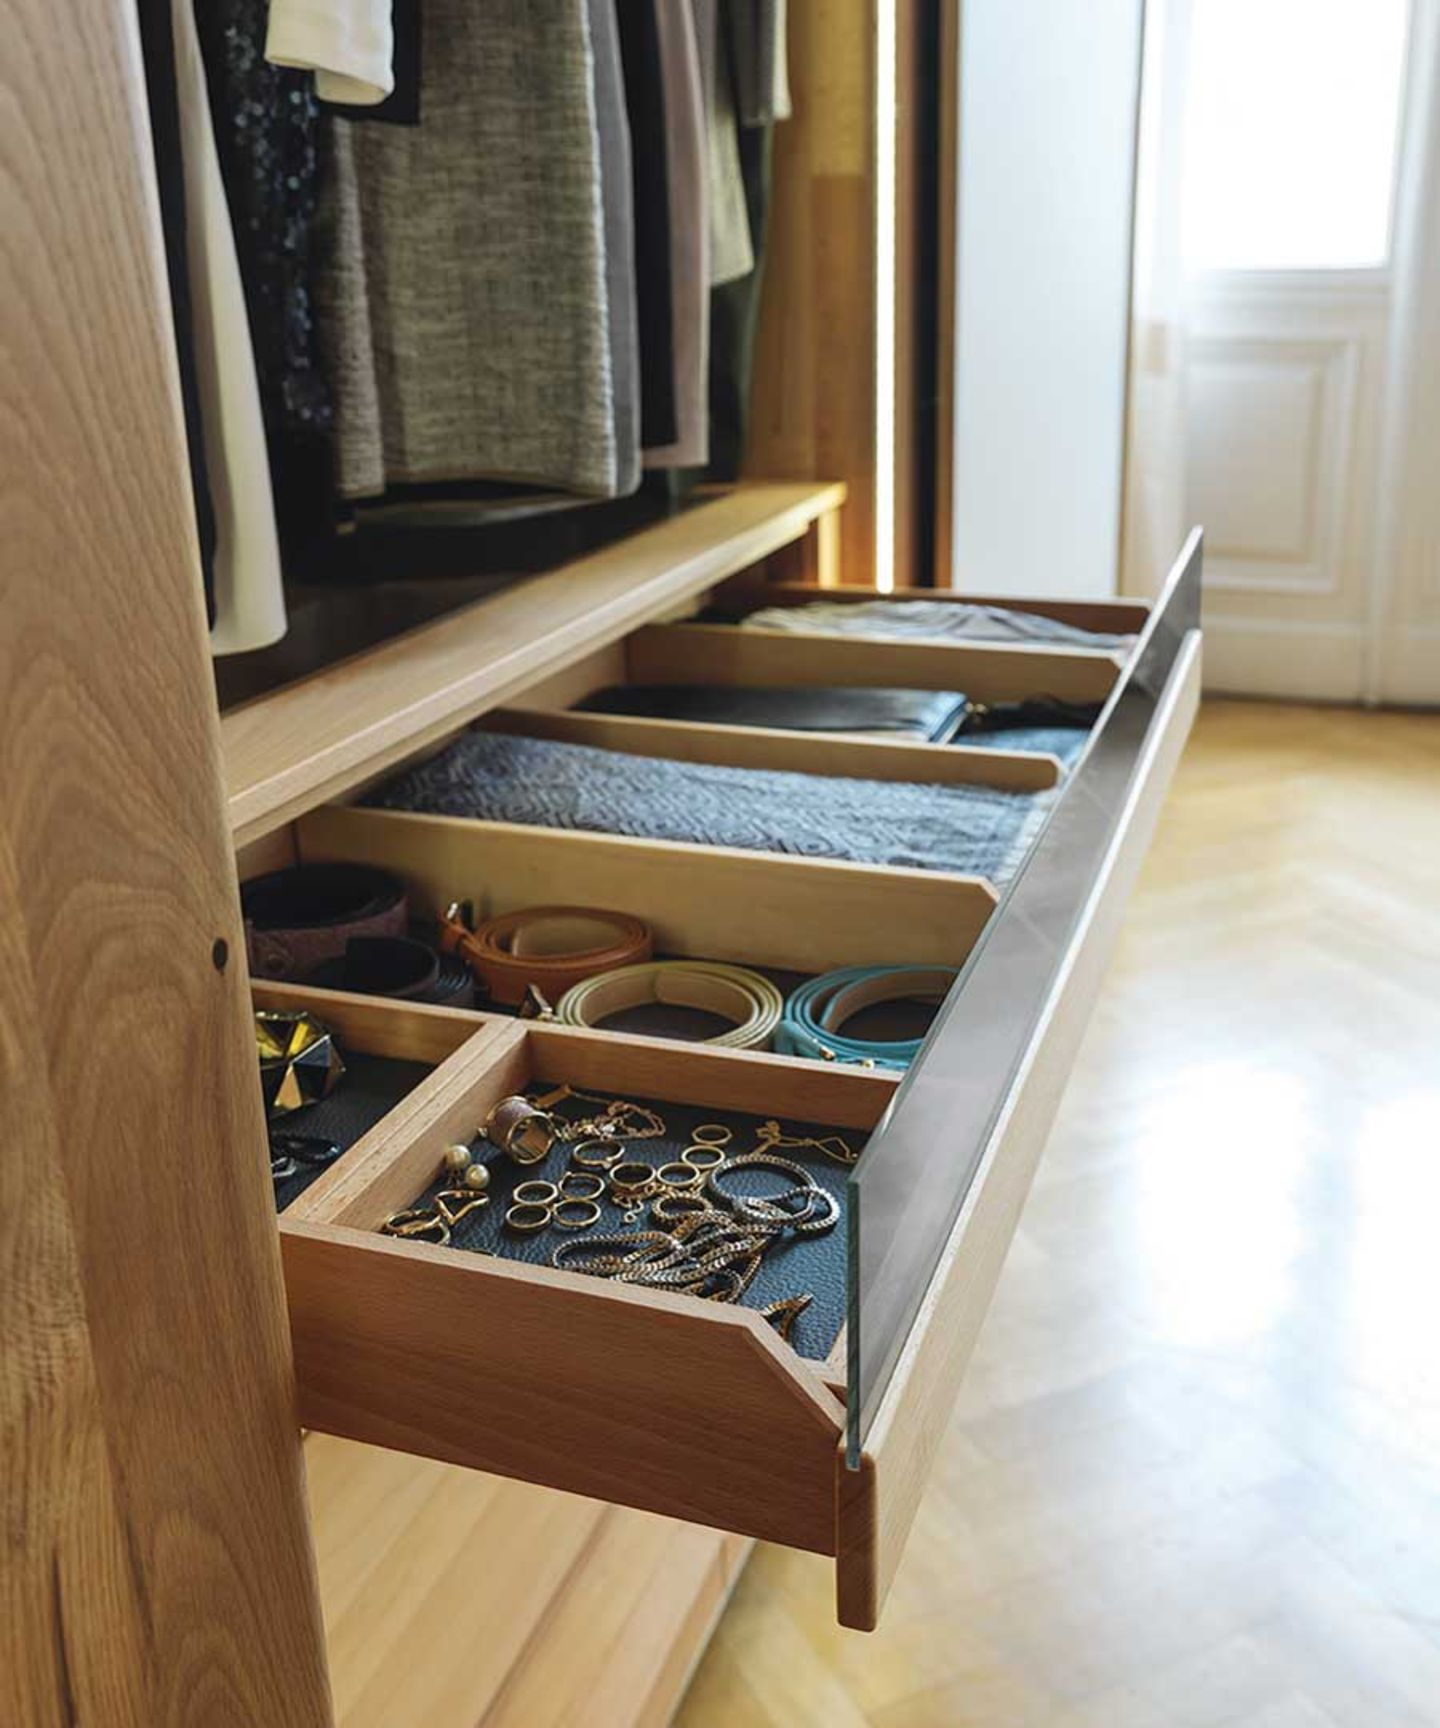 Practical wardrobe inside drawer